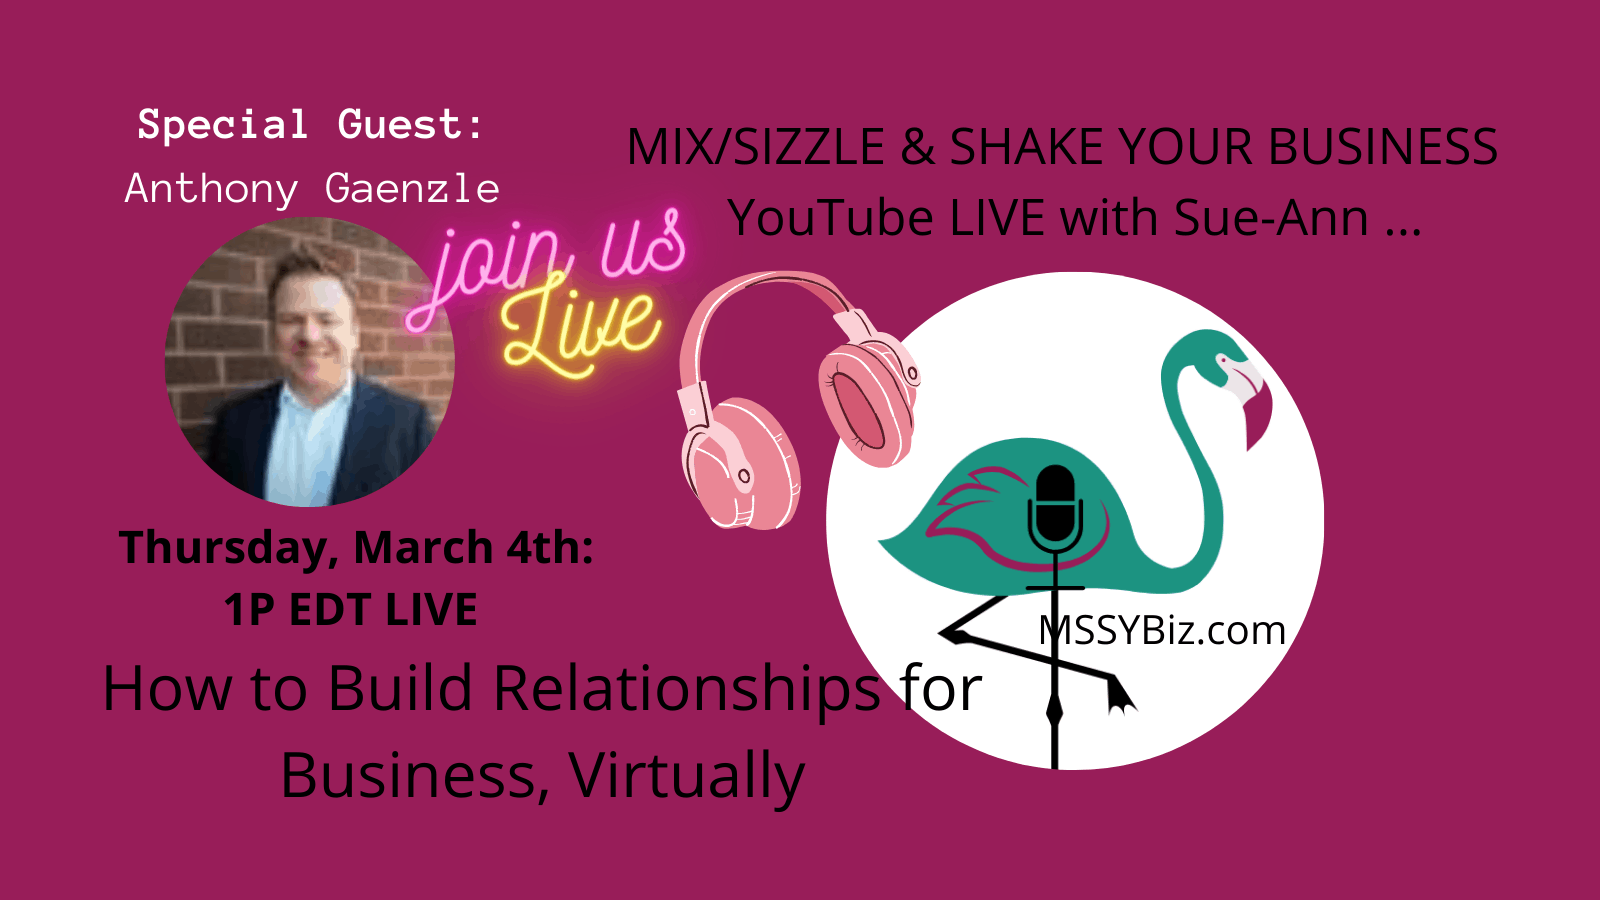 Building Business Relationships, Digitally with Anthony Gaenzle by Sue-Ann for MSSYBiz dot com.